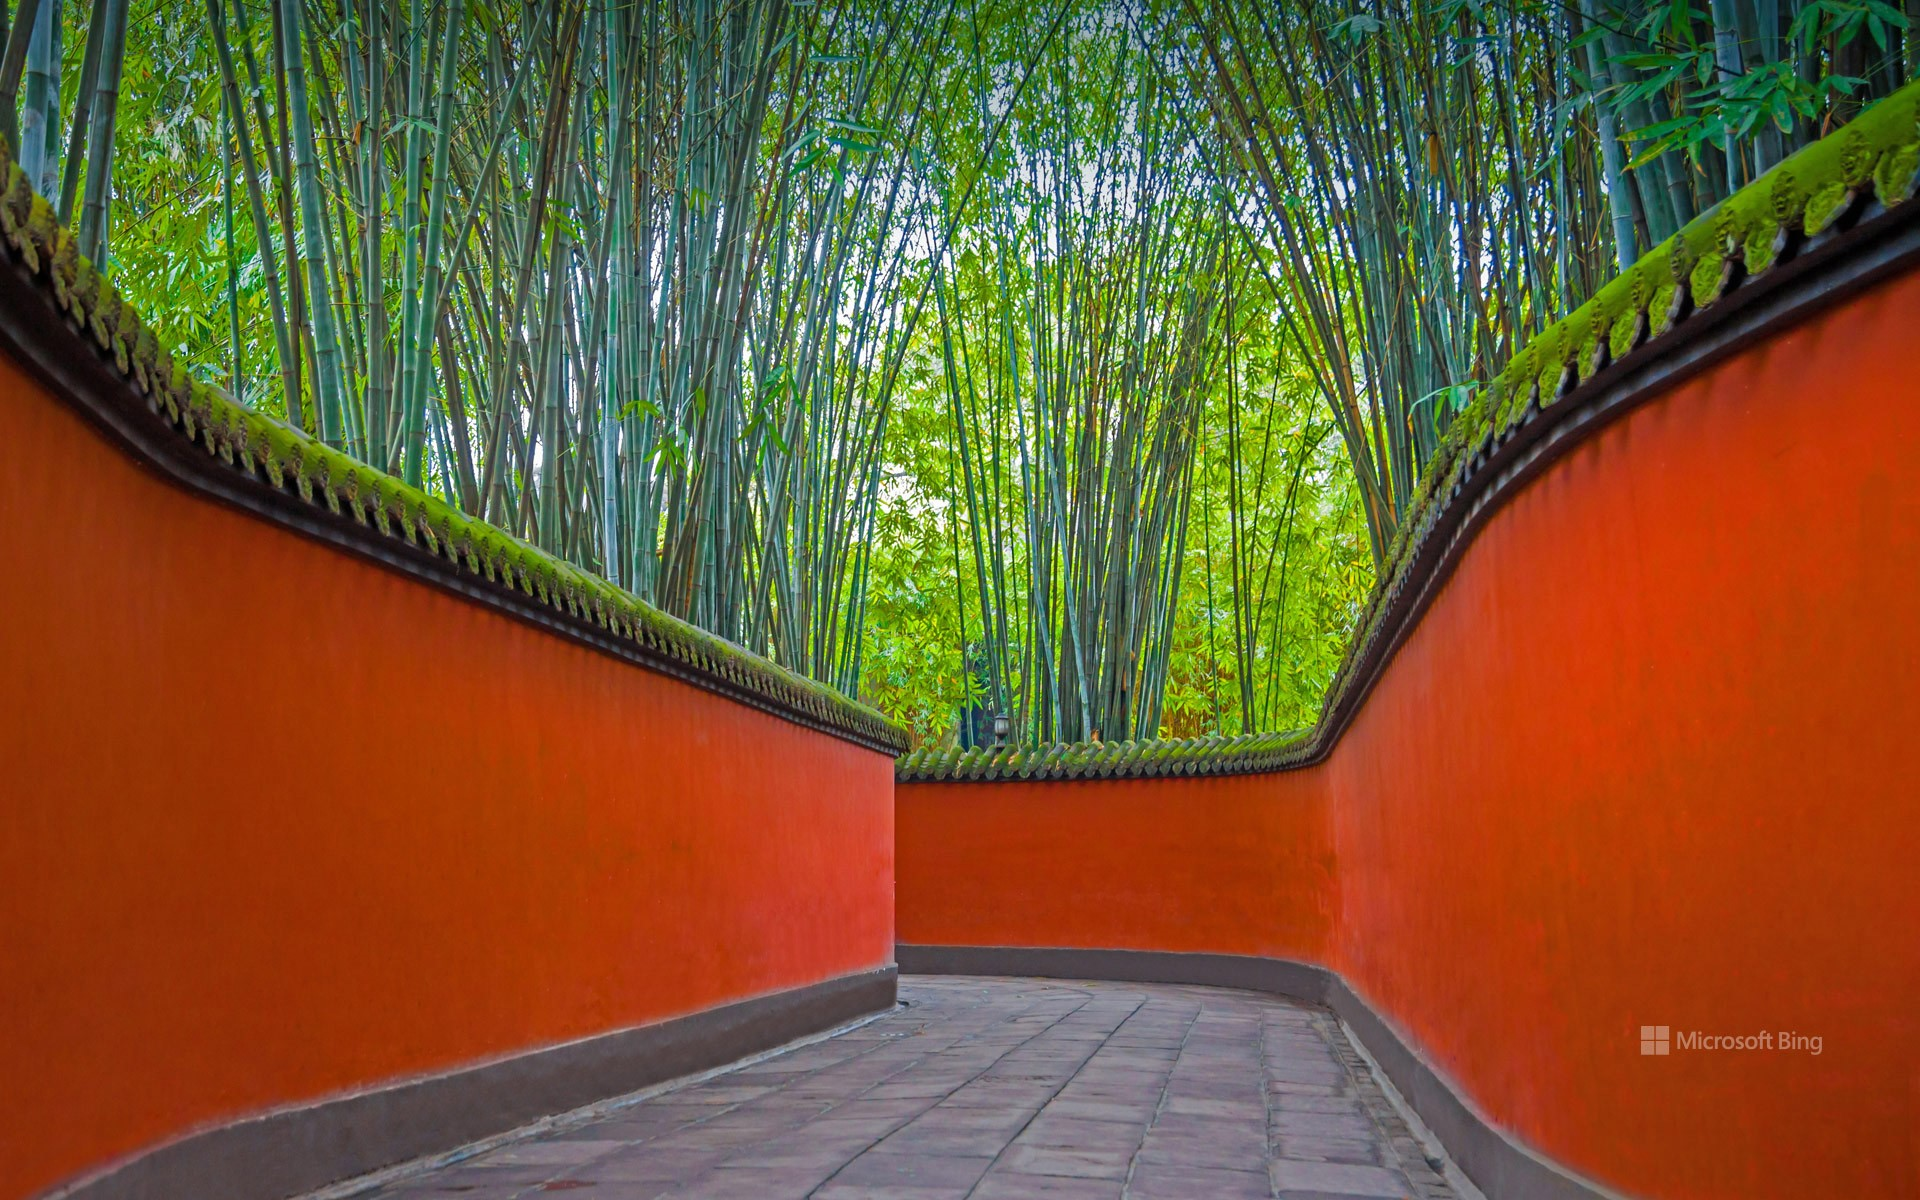 Alley with red walls and bamboo grove in Wuhou Temple, Chengdu, Sichuan province, China